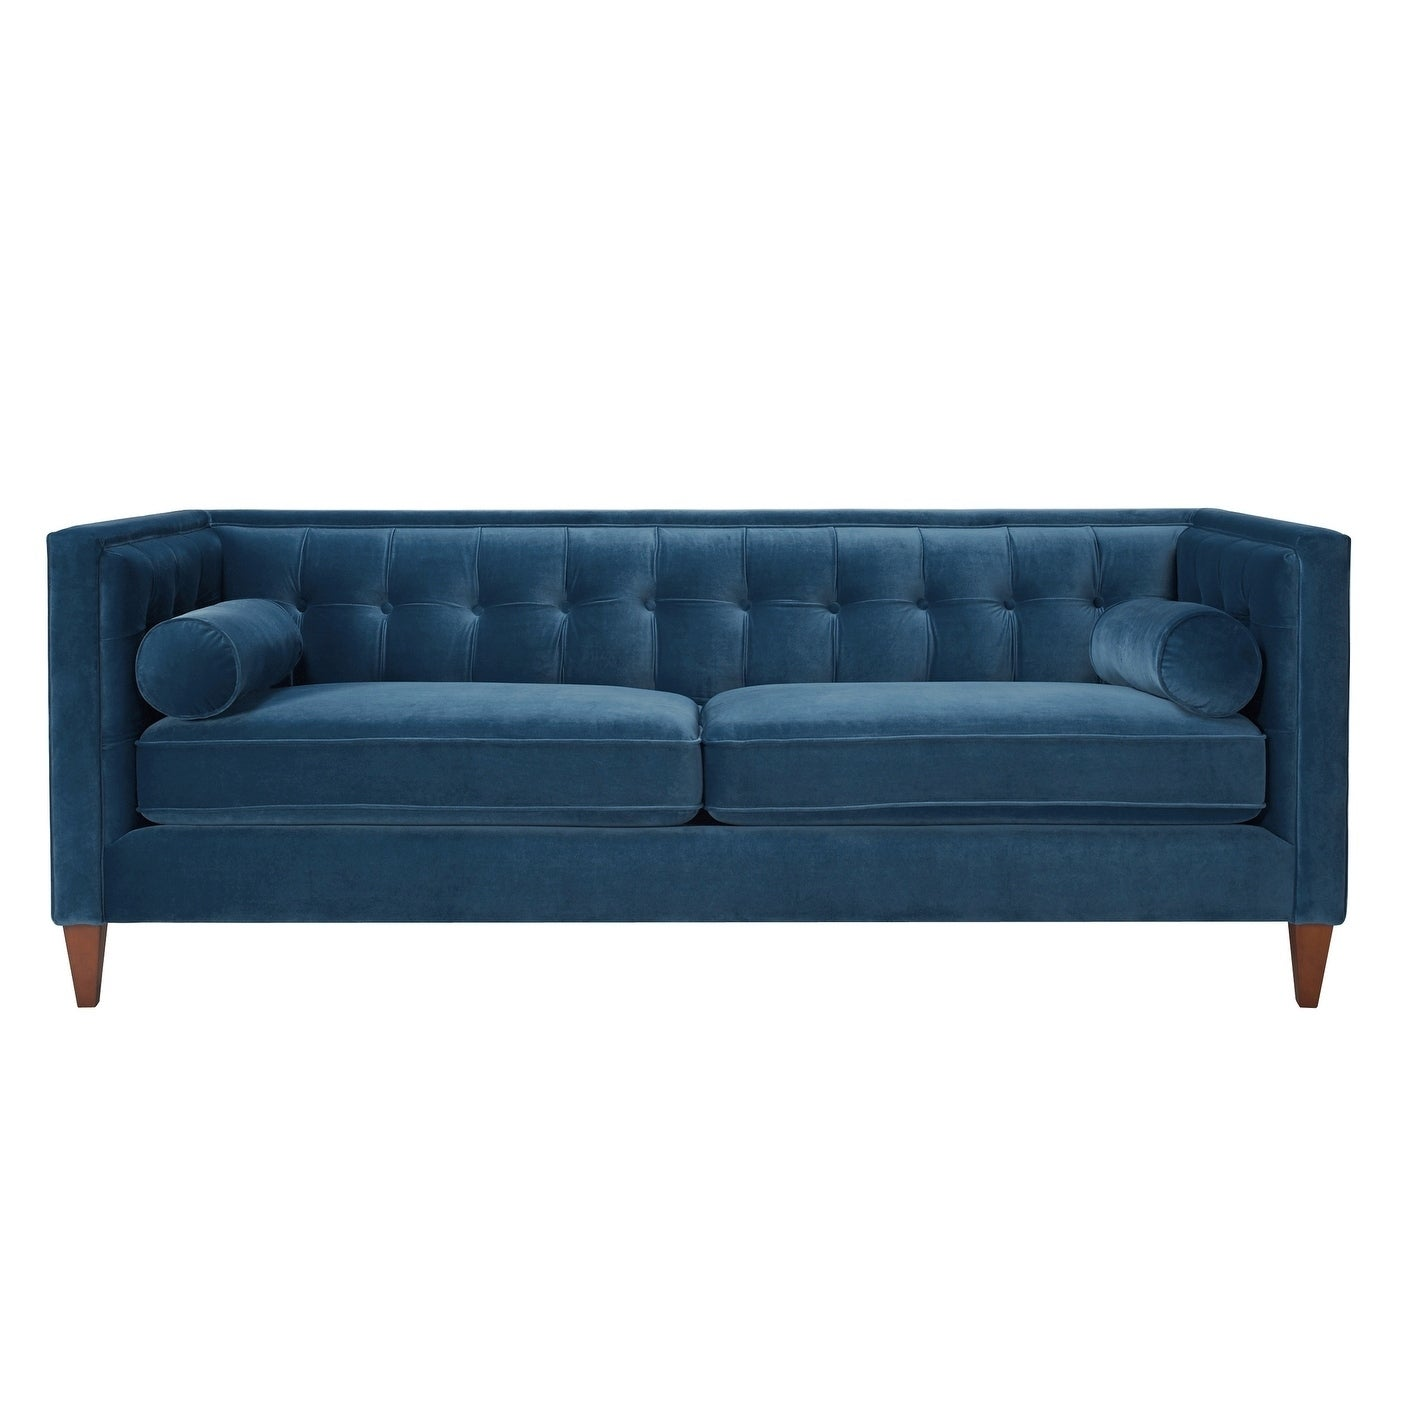 Shop Jennifer Taylor Jack Tuxedo Sofa   On Sale   Free Shipping Today    Overstock.com   10273796